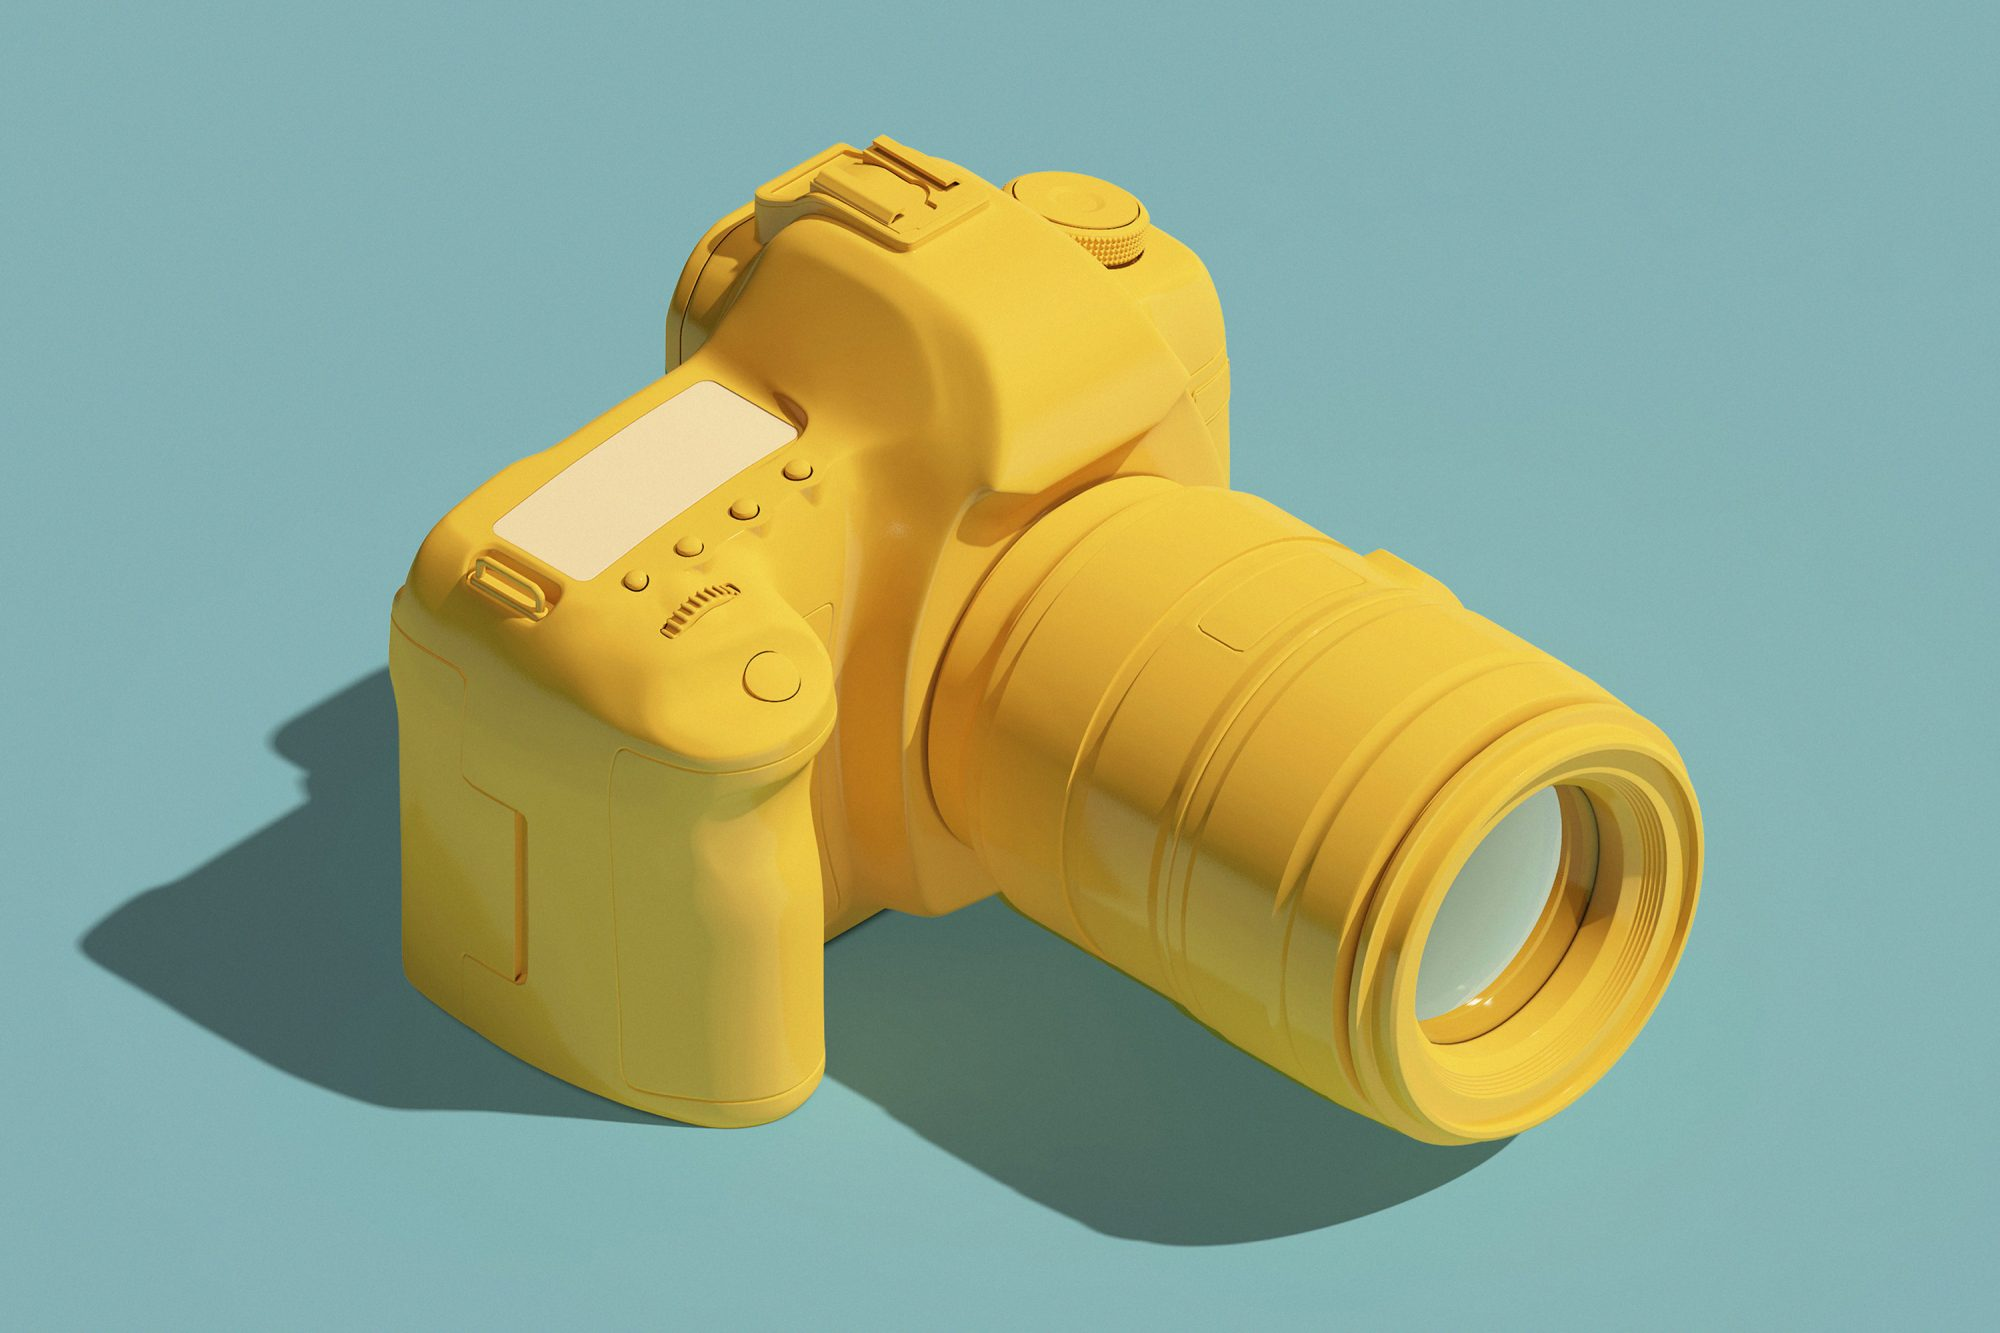 beginner photography tips from professional photographers: yellow camera